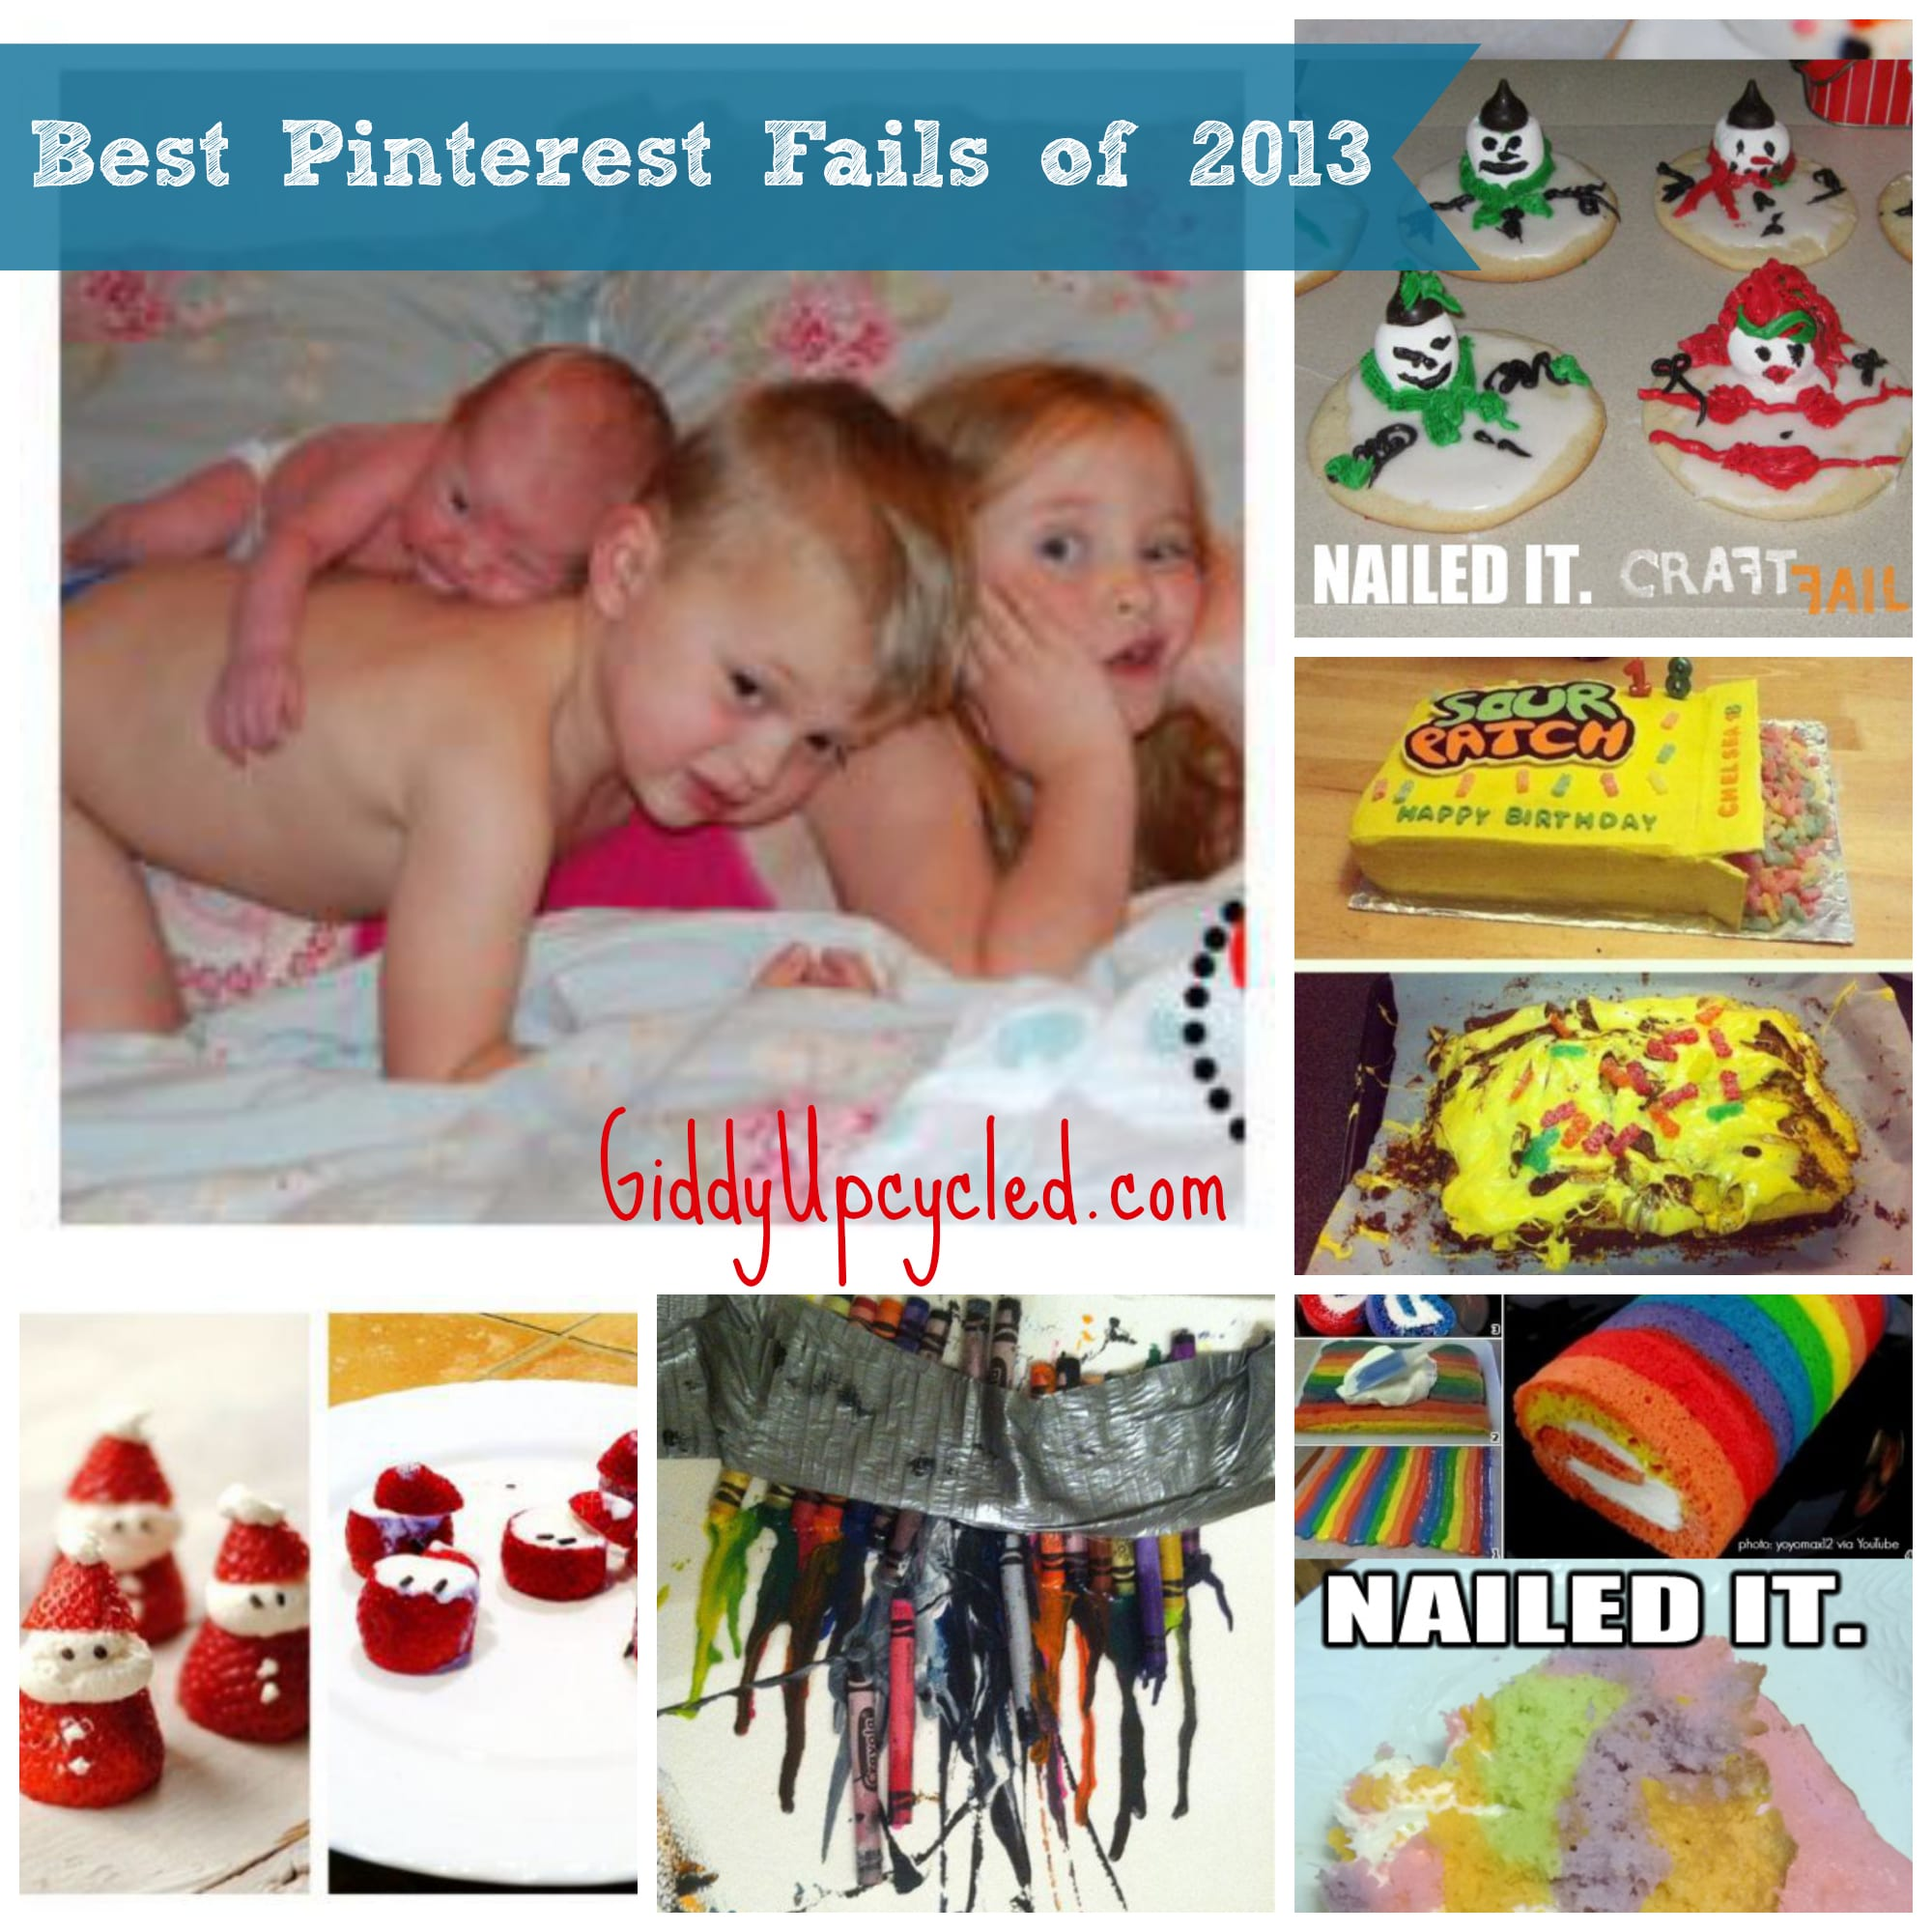 Hilarious Pinterest Fails and Craft Fails